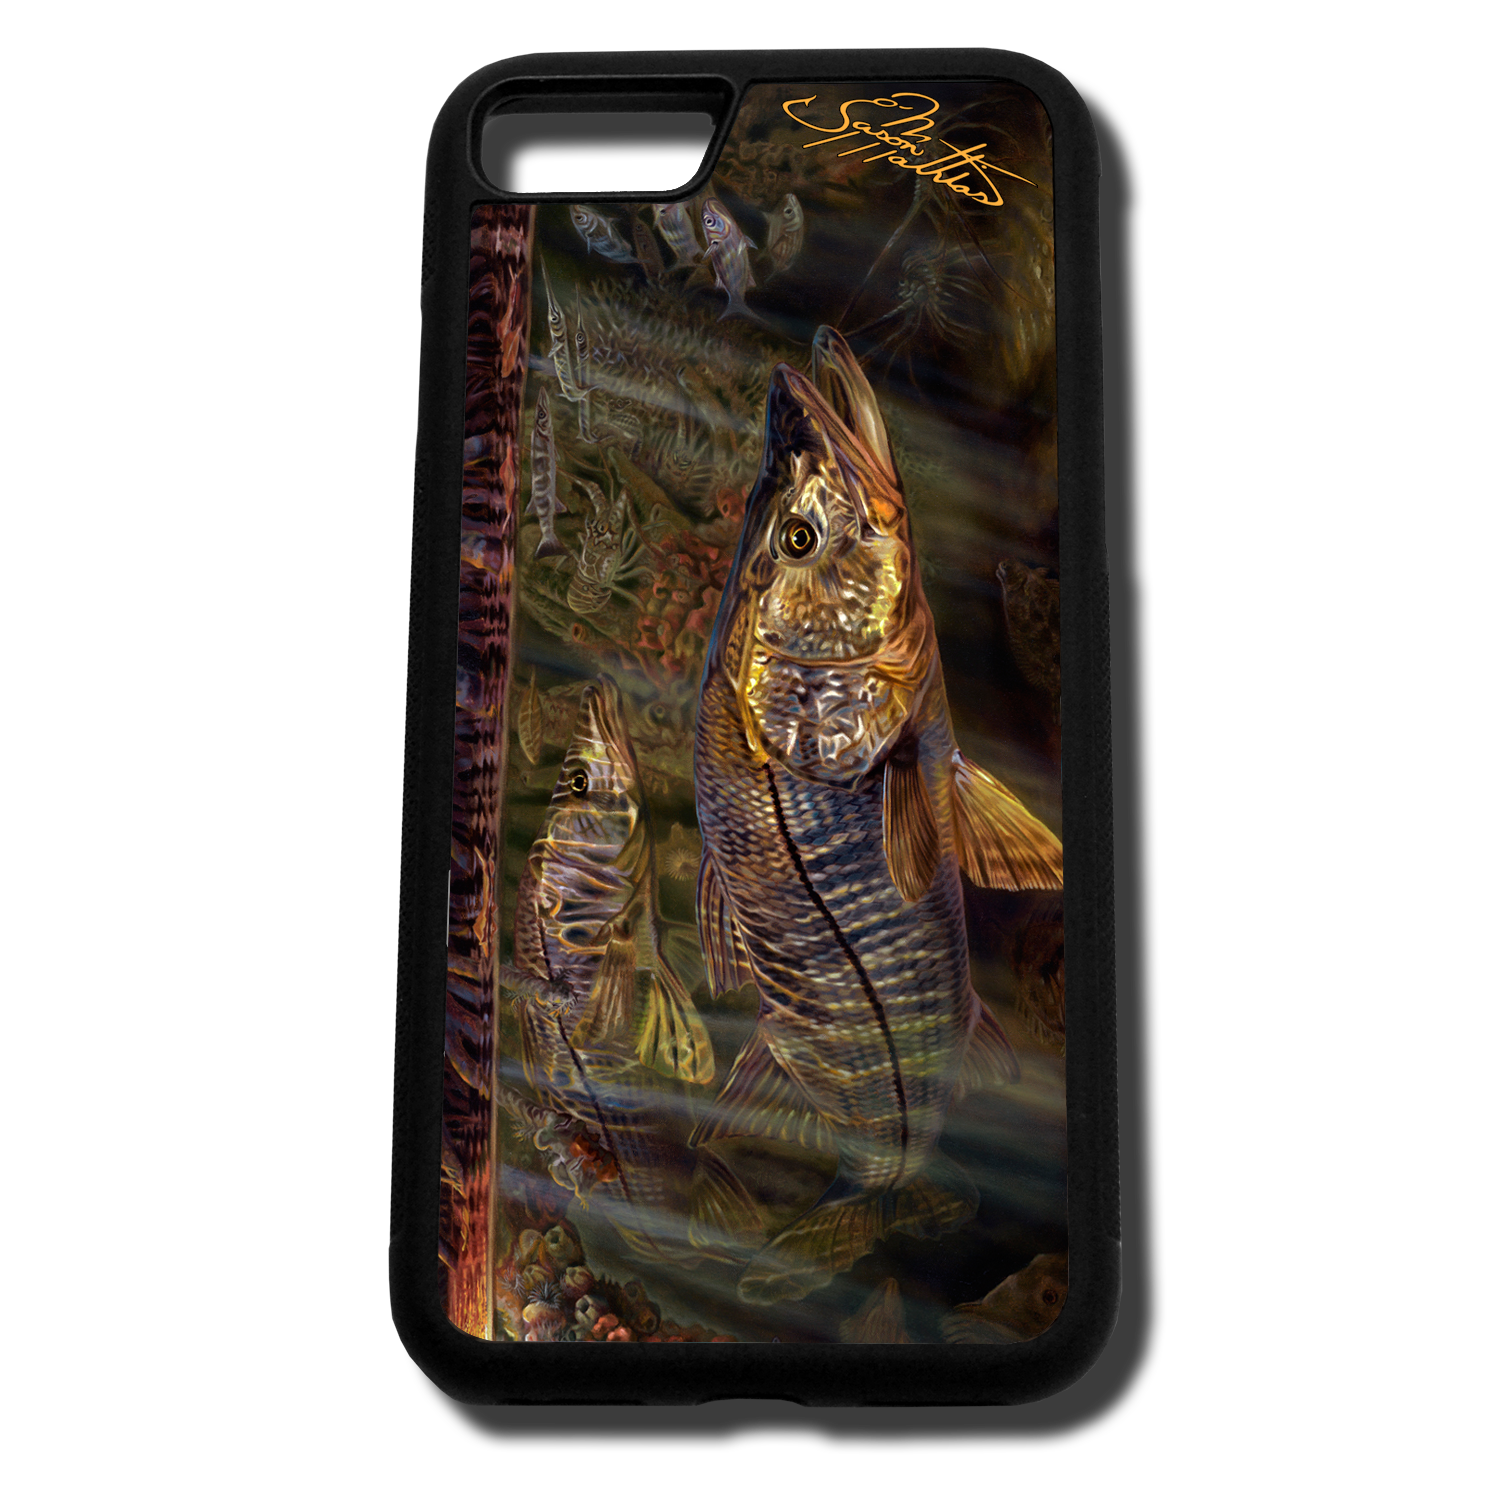 iphone-8-case-snook.png